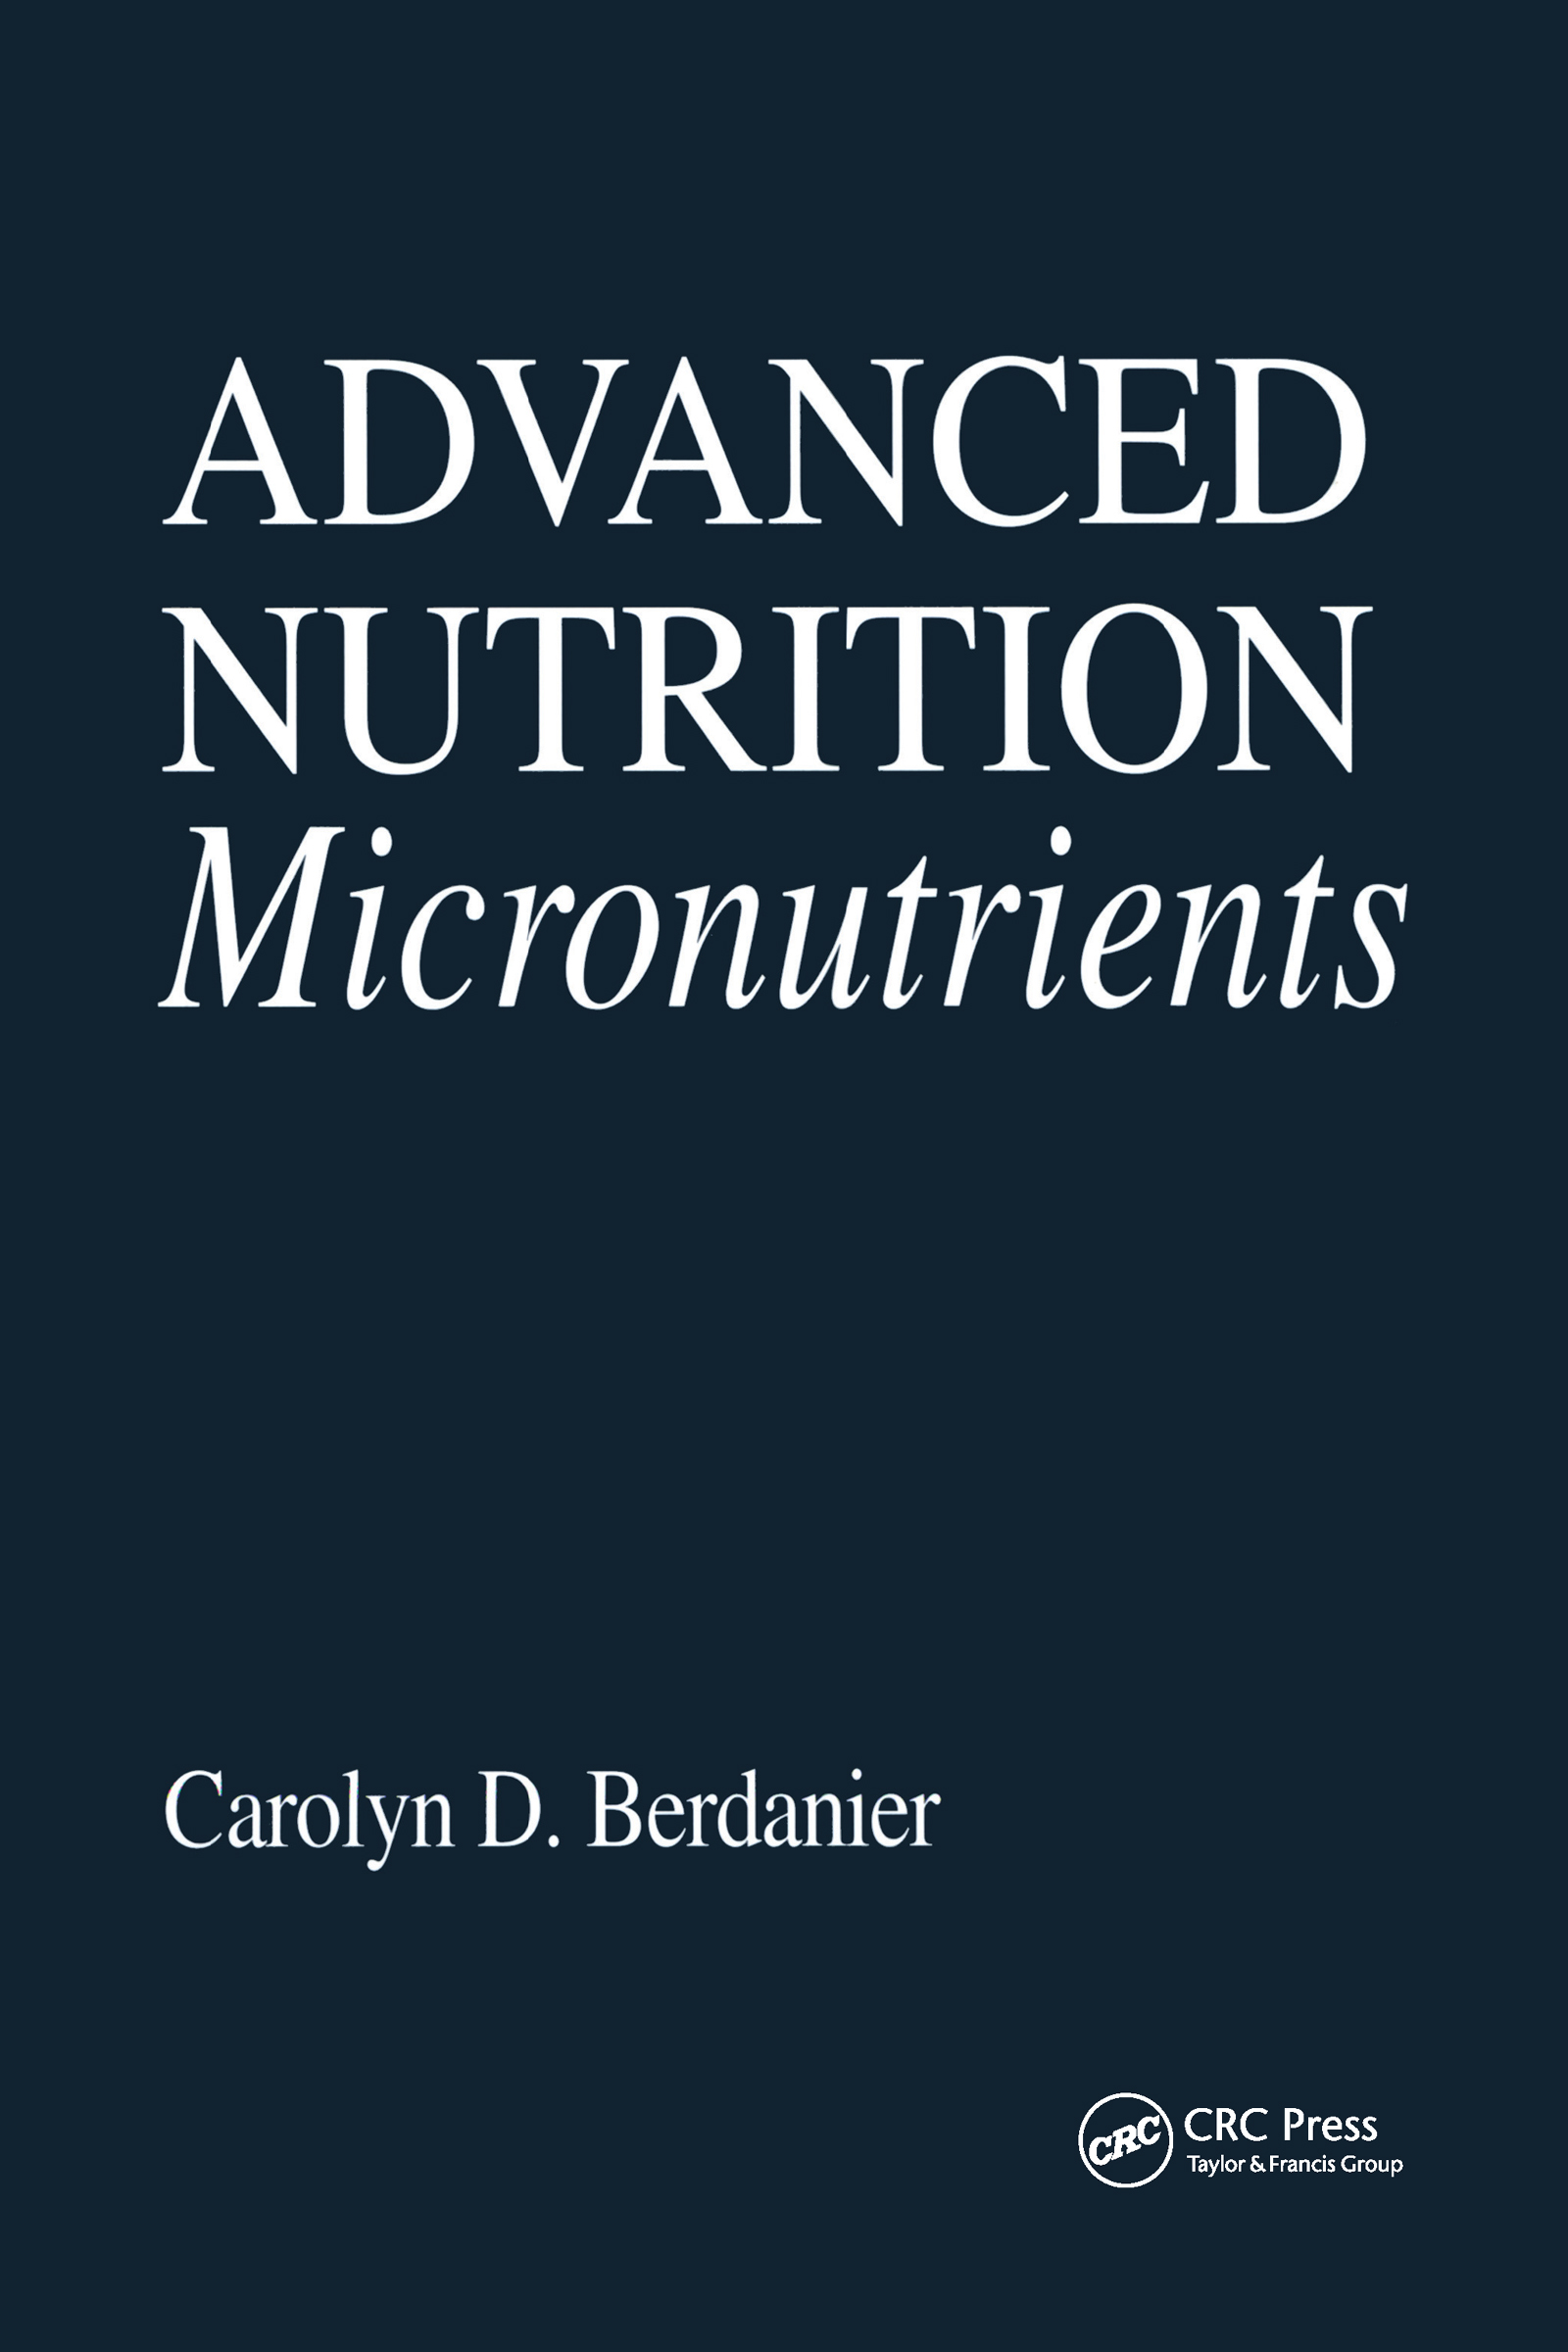 Advanced Nutrition Micronutrients: 1st Edition (Hardback) book cover